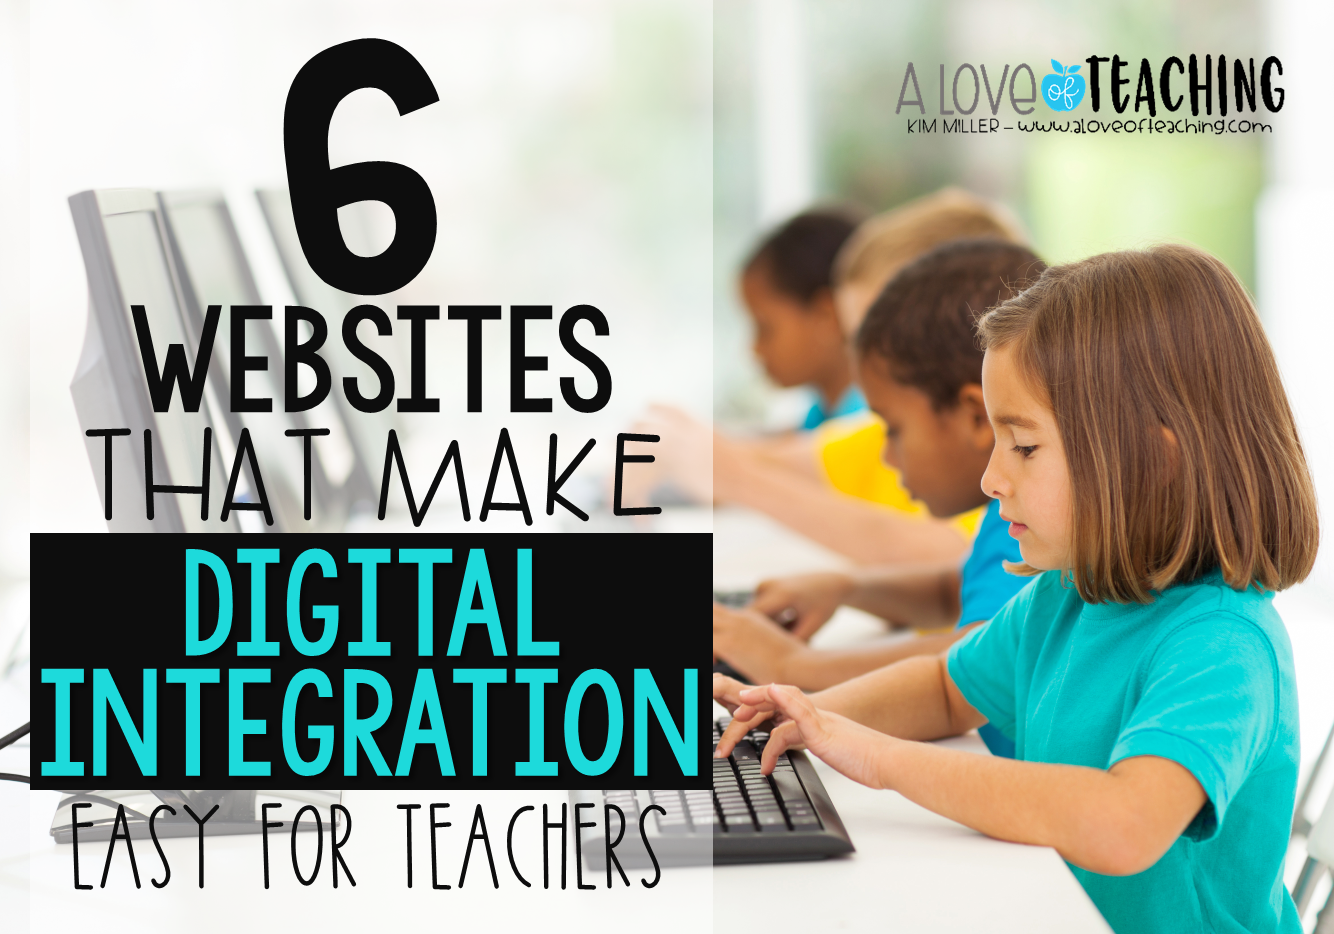 6 Websites That Make Digital Integration Easy for Teachers